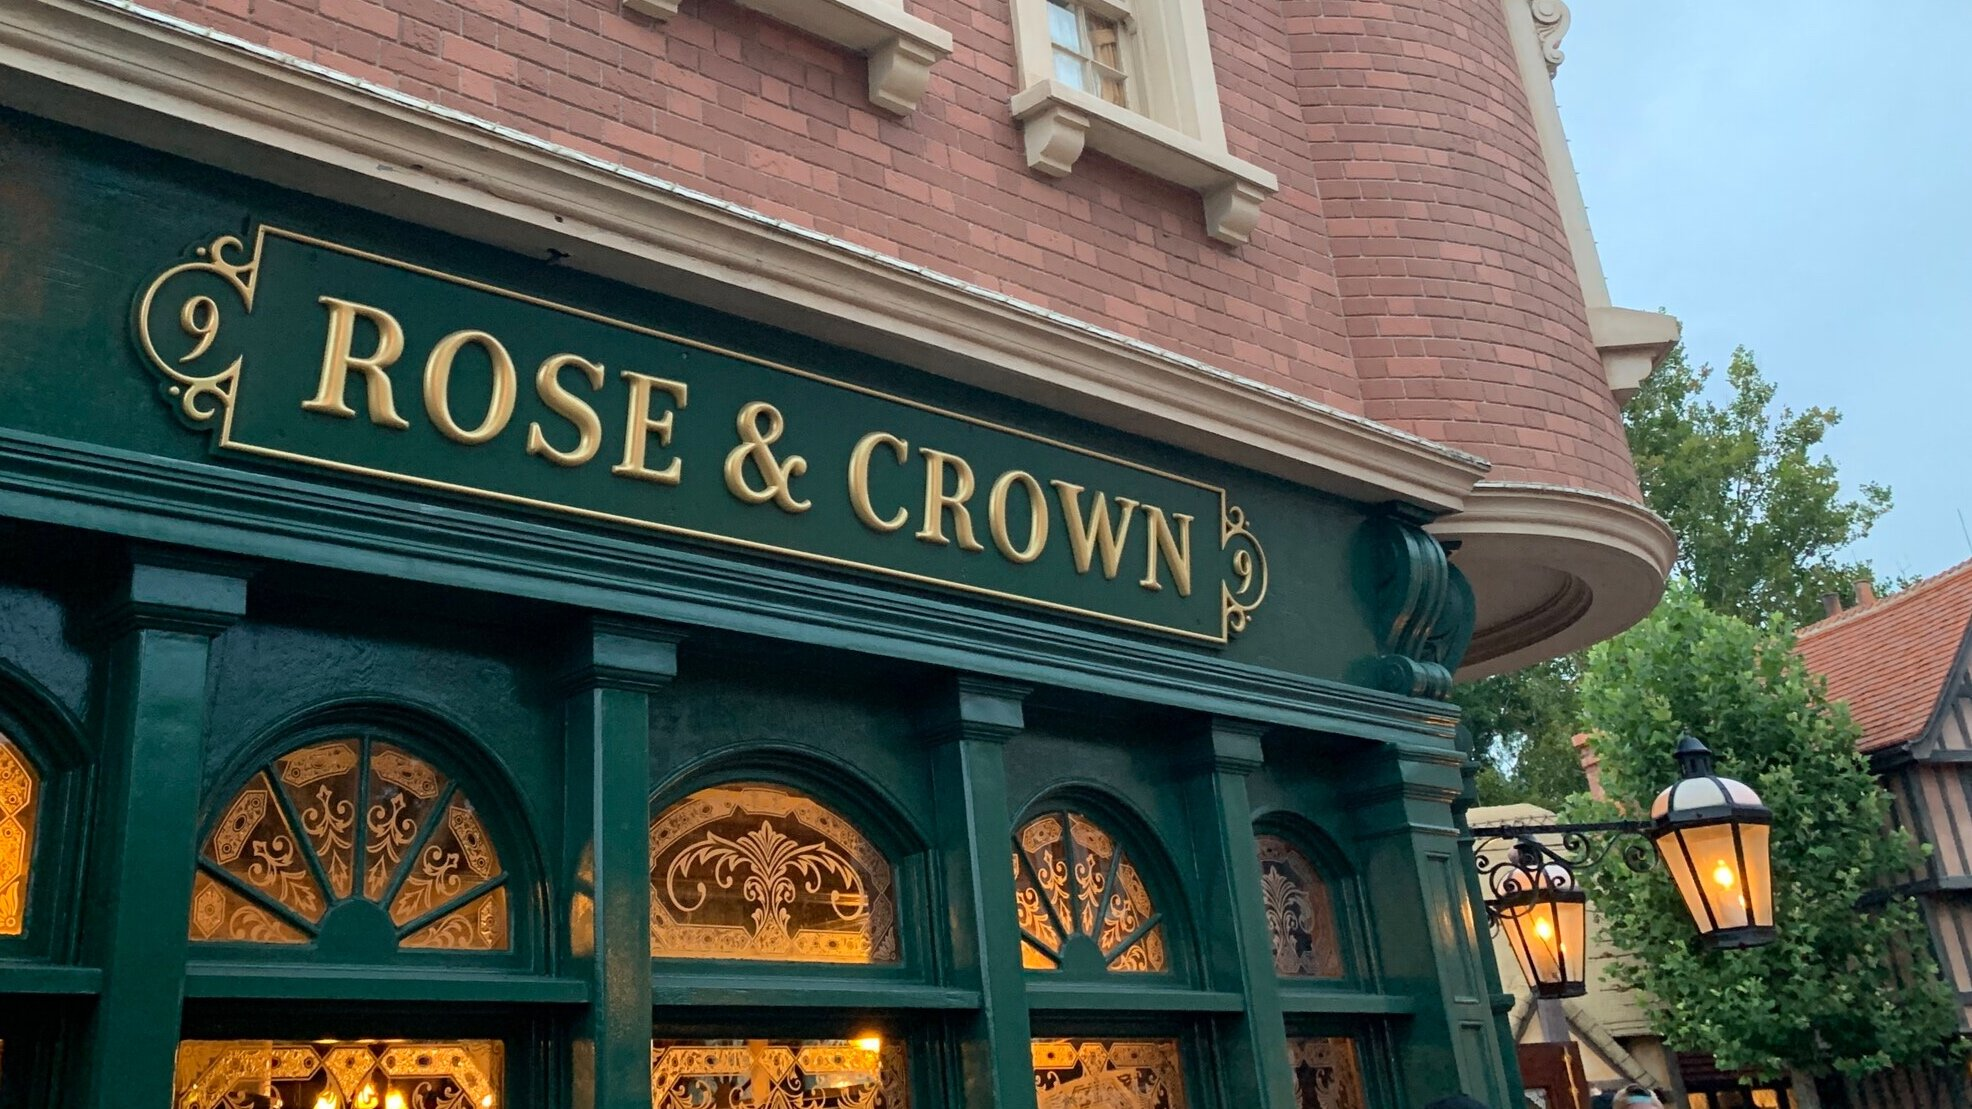 The Rose & Crown has always been a favorite spot of ours.